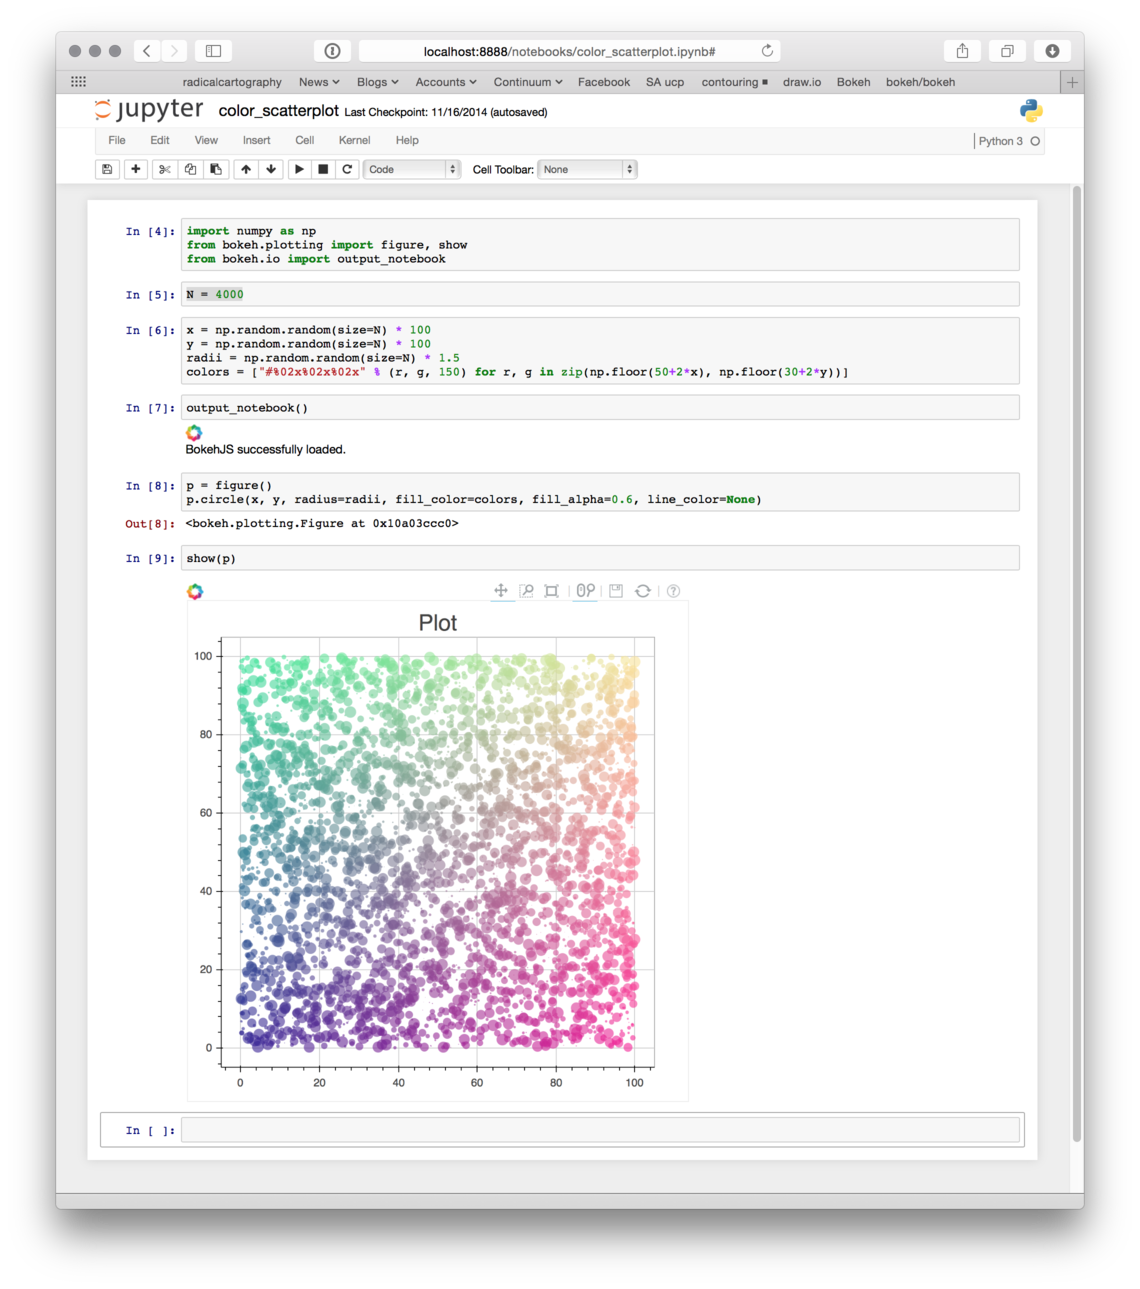 how to delete a cell in jupyter